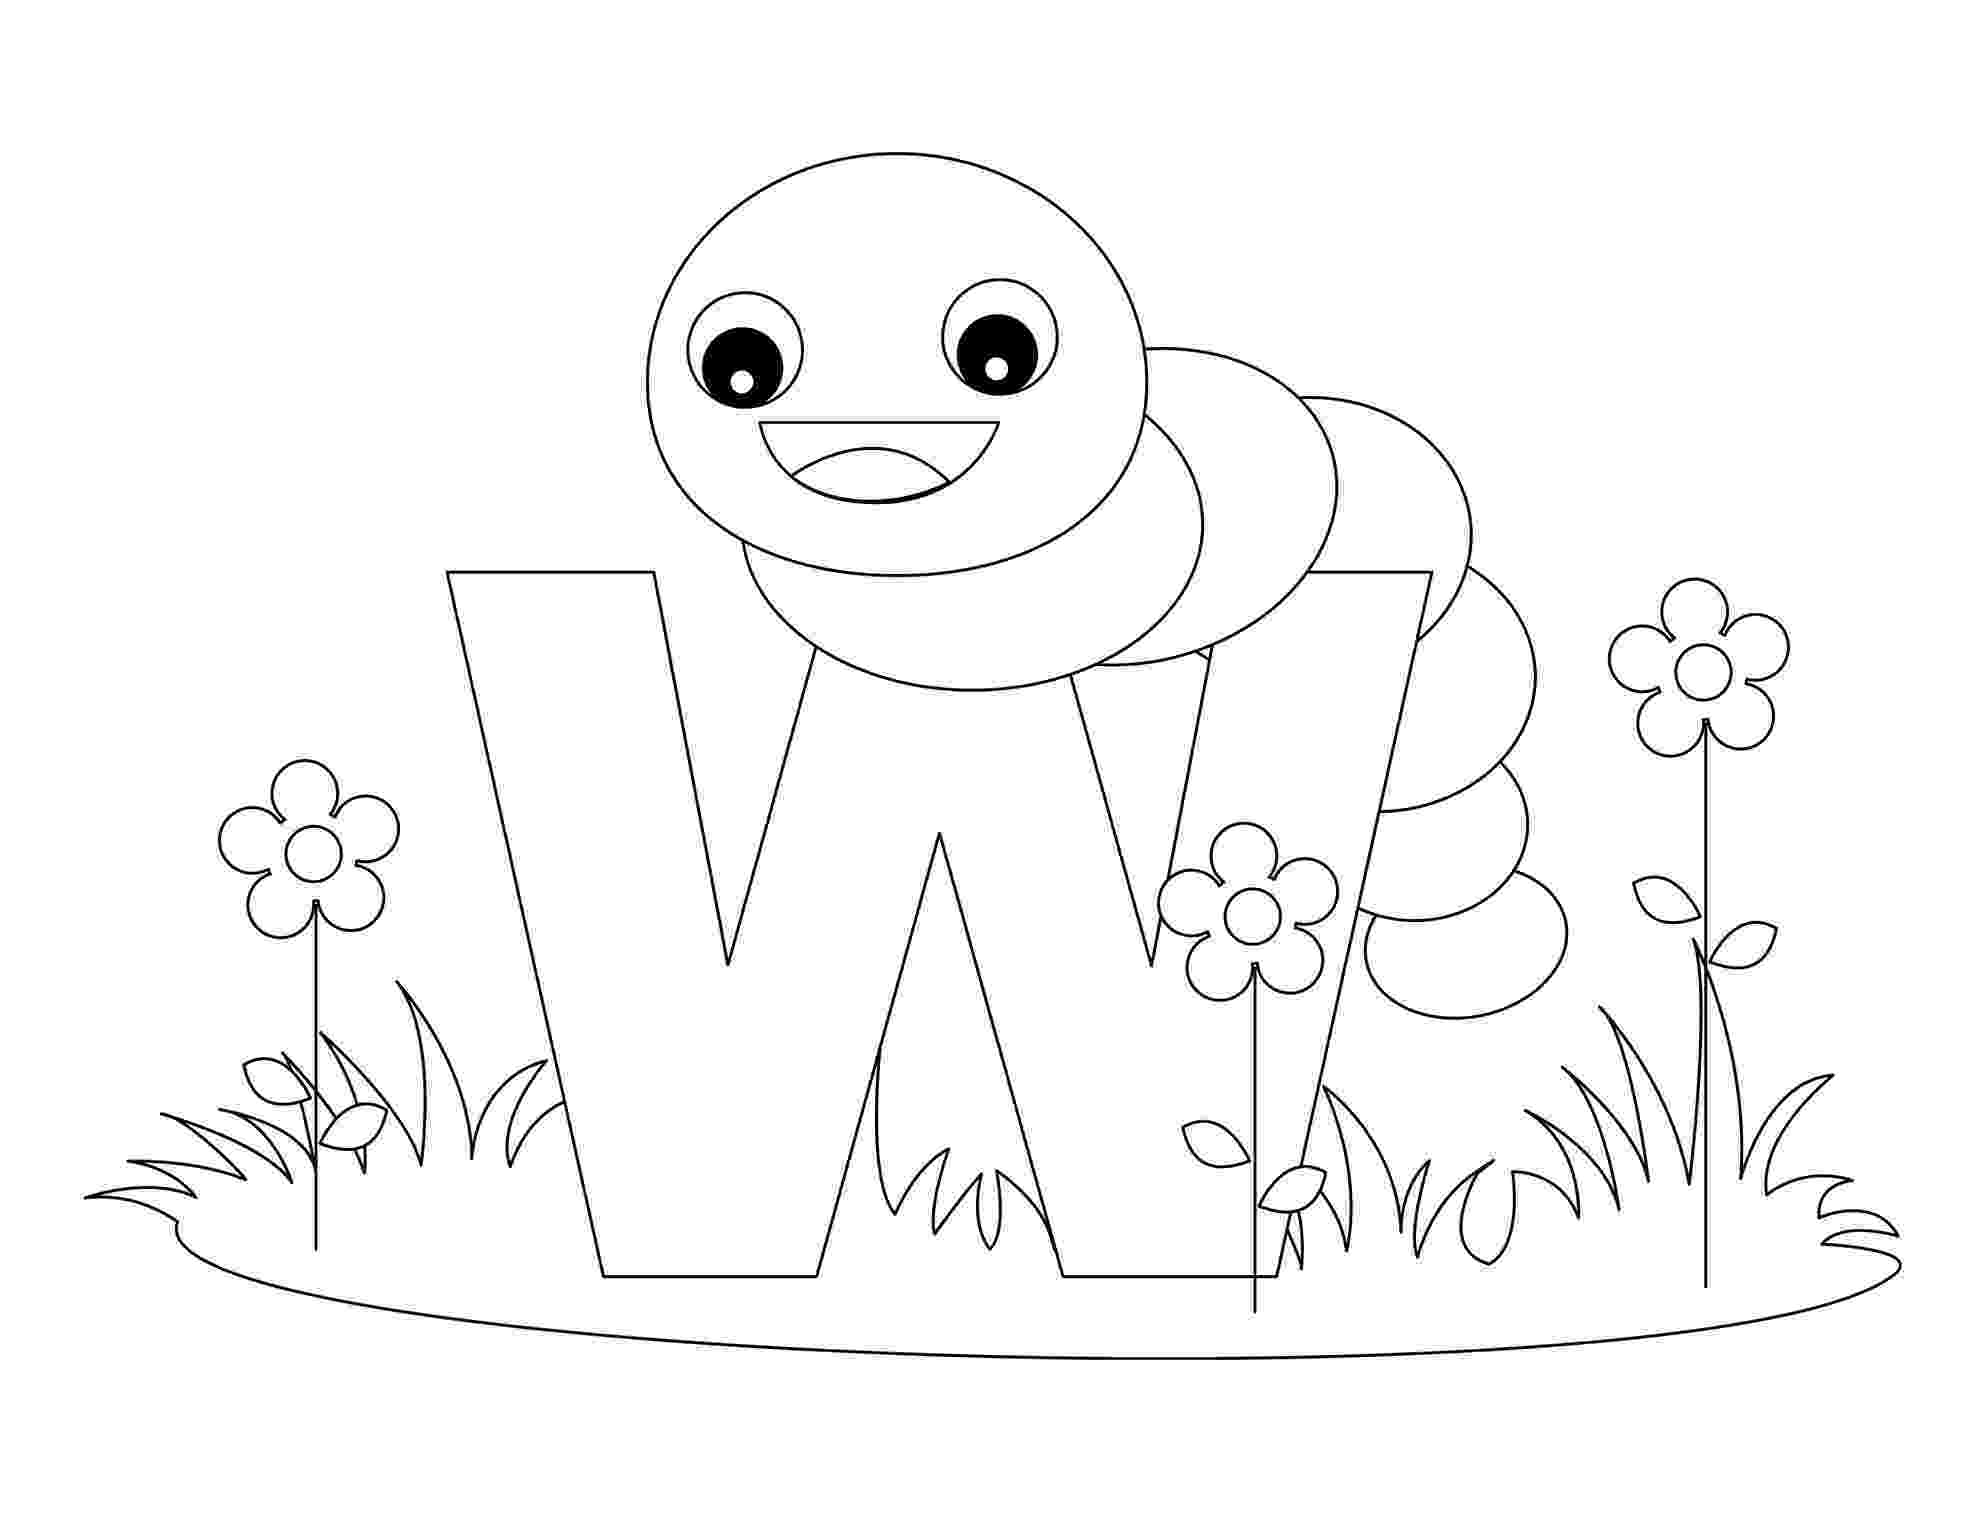 free alphabet coloring pages free printable alphabet coloring pages for kids best pages alphabet free coloring